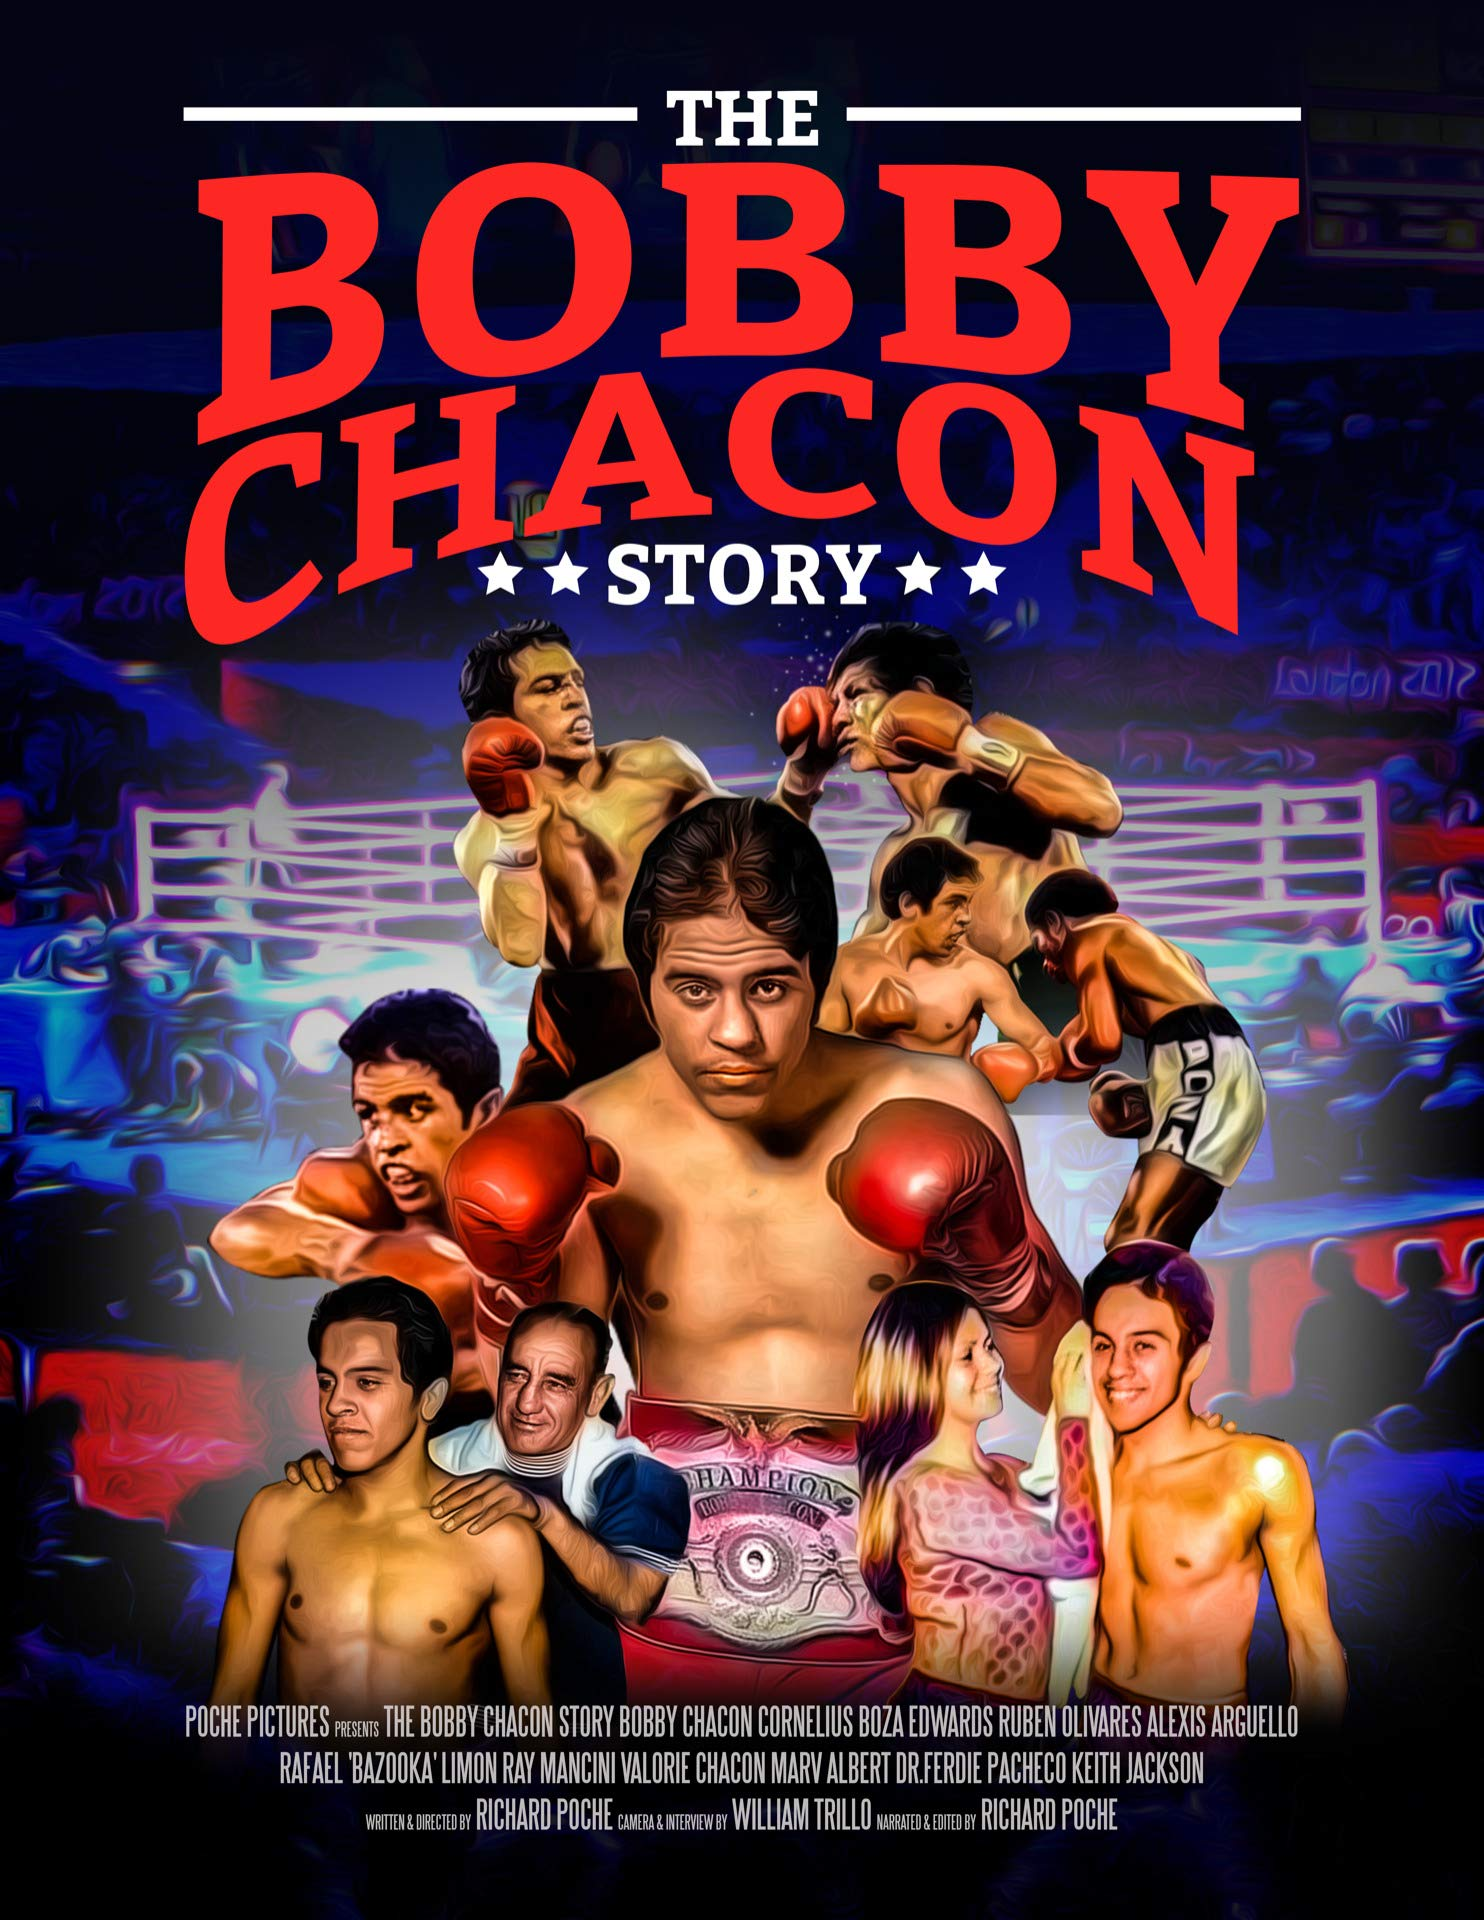 The Bobby Chacon Story